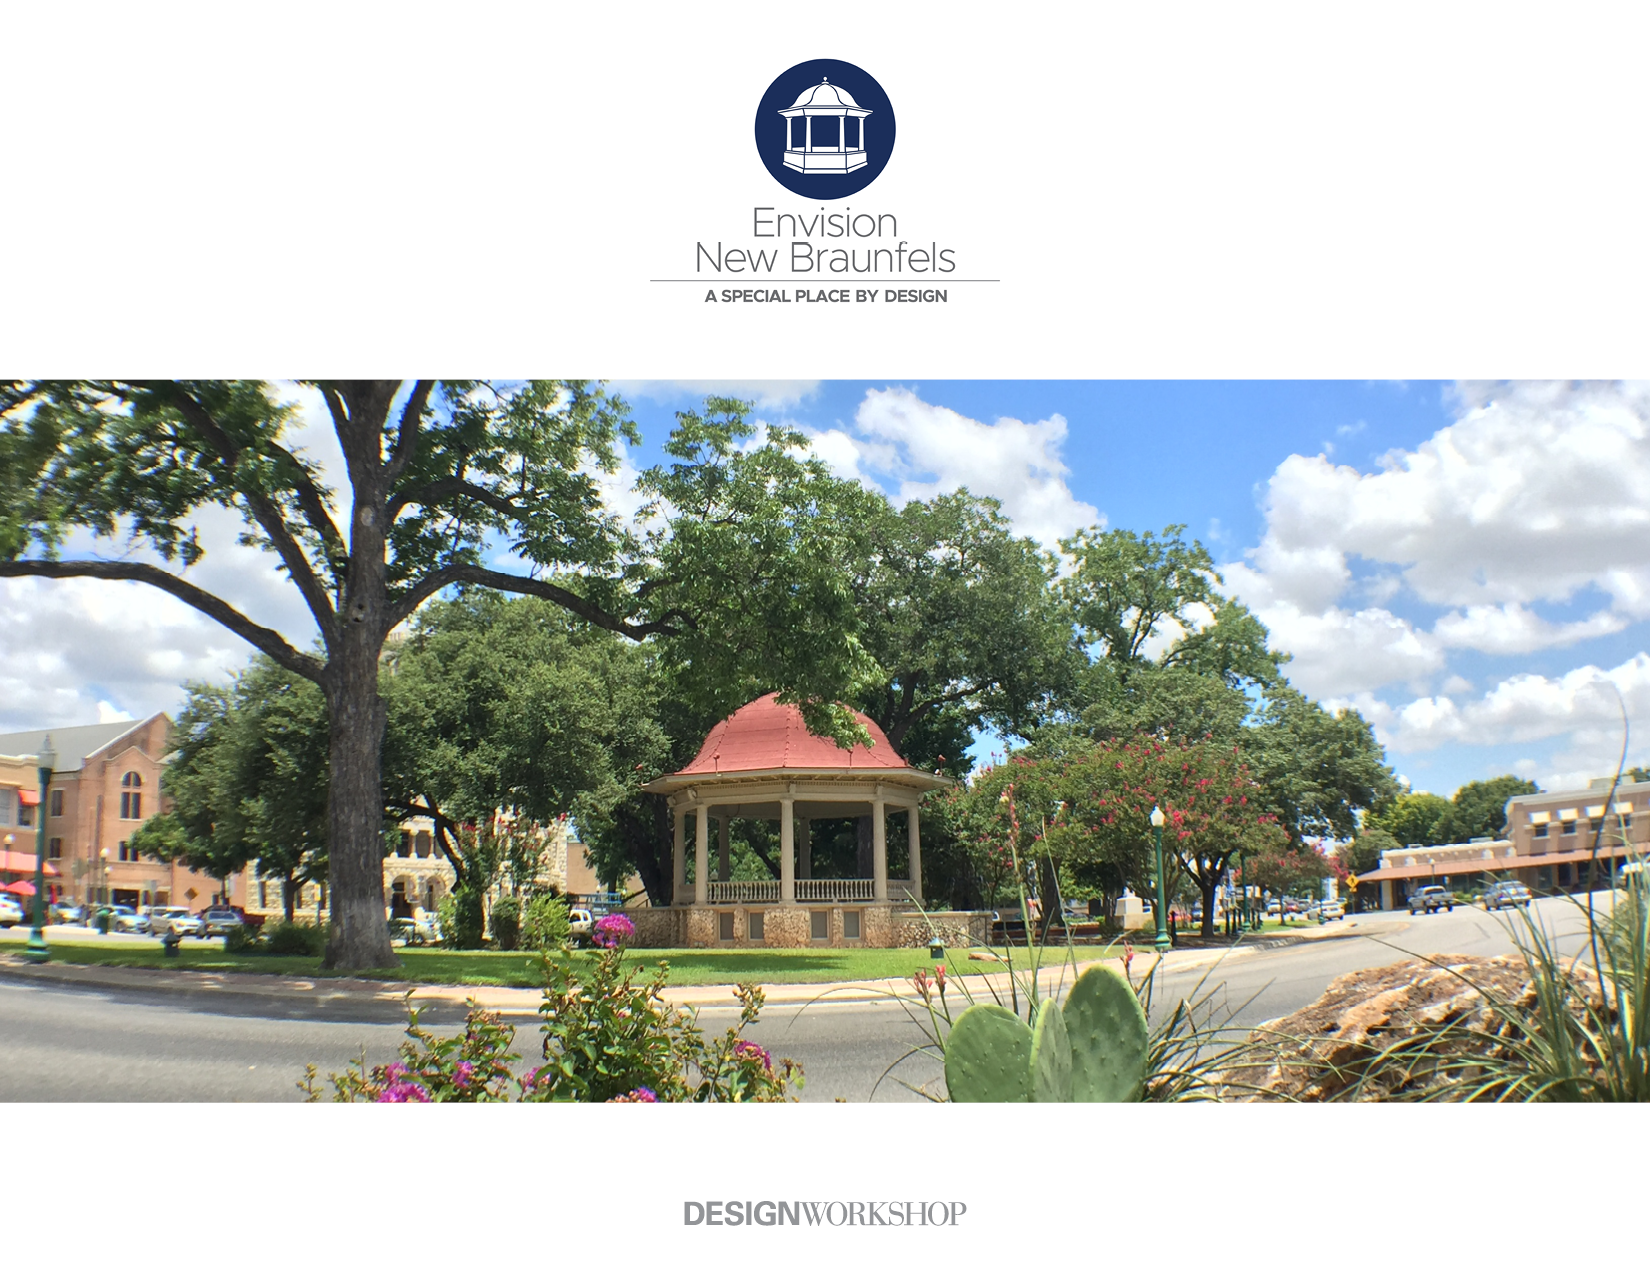 Envision-New-Braunfels-180620.png